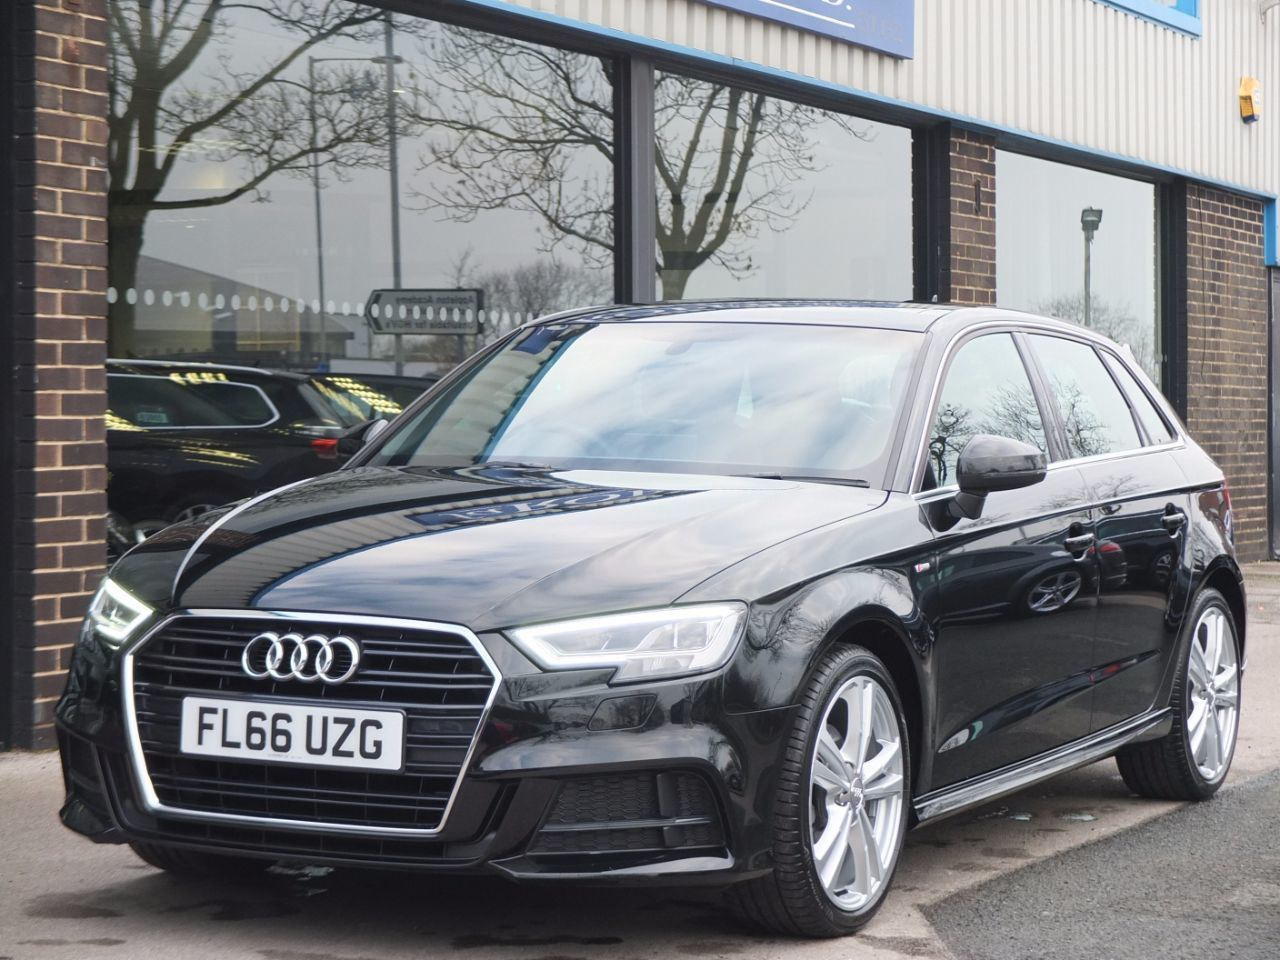 Audi A3 Sportback 1.4 TFSI S Line (Cylinder on Demand) Hatchback Petrol BlackAudi A3 Sportback 1.4 TFSI S Line (Cylinder on Demand) Hatchback Petrol Black at fa Roper Ltd Bradford